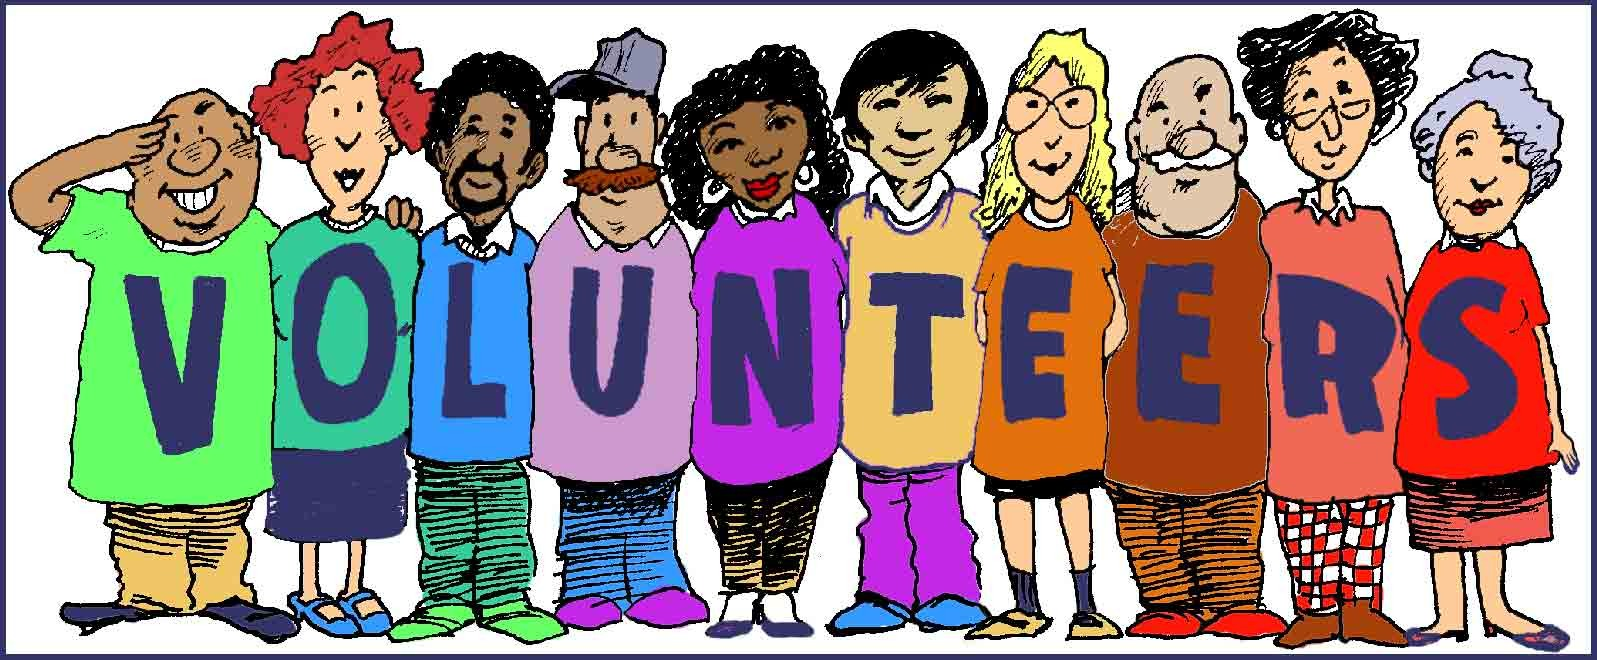 Volunteer - remember, this is a time of giving and one of the greatest gifts is your time and dedication.  Food banks are usually overflowing with volunteers this time of year, but start a campaign to write cards to soldiers in your workplace or collect toys for a local shelter.  Also, help a friend